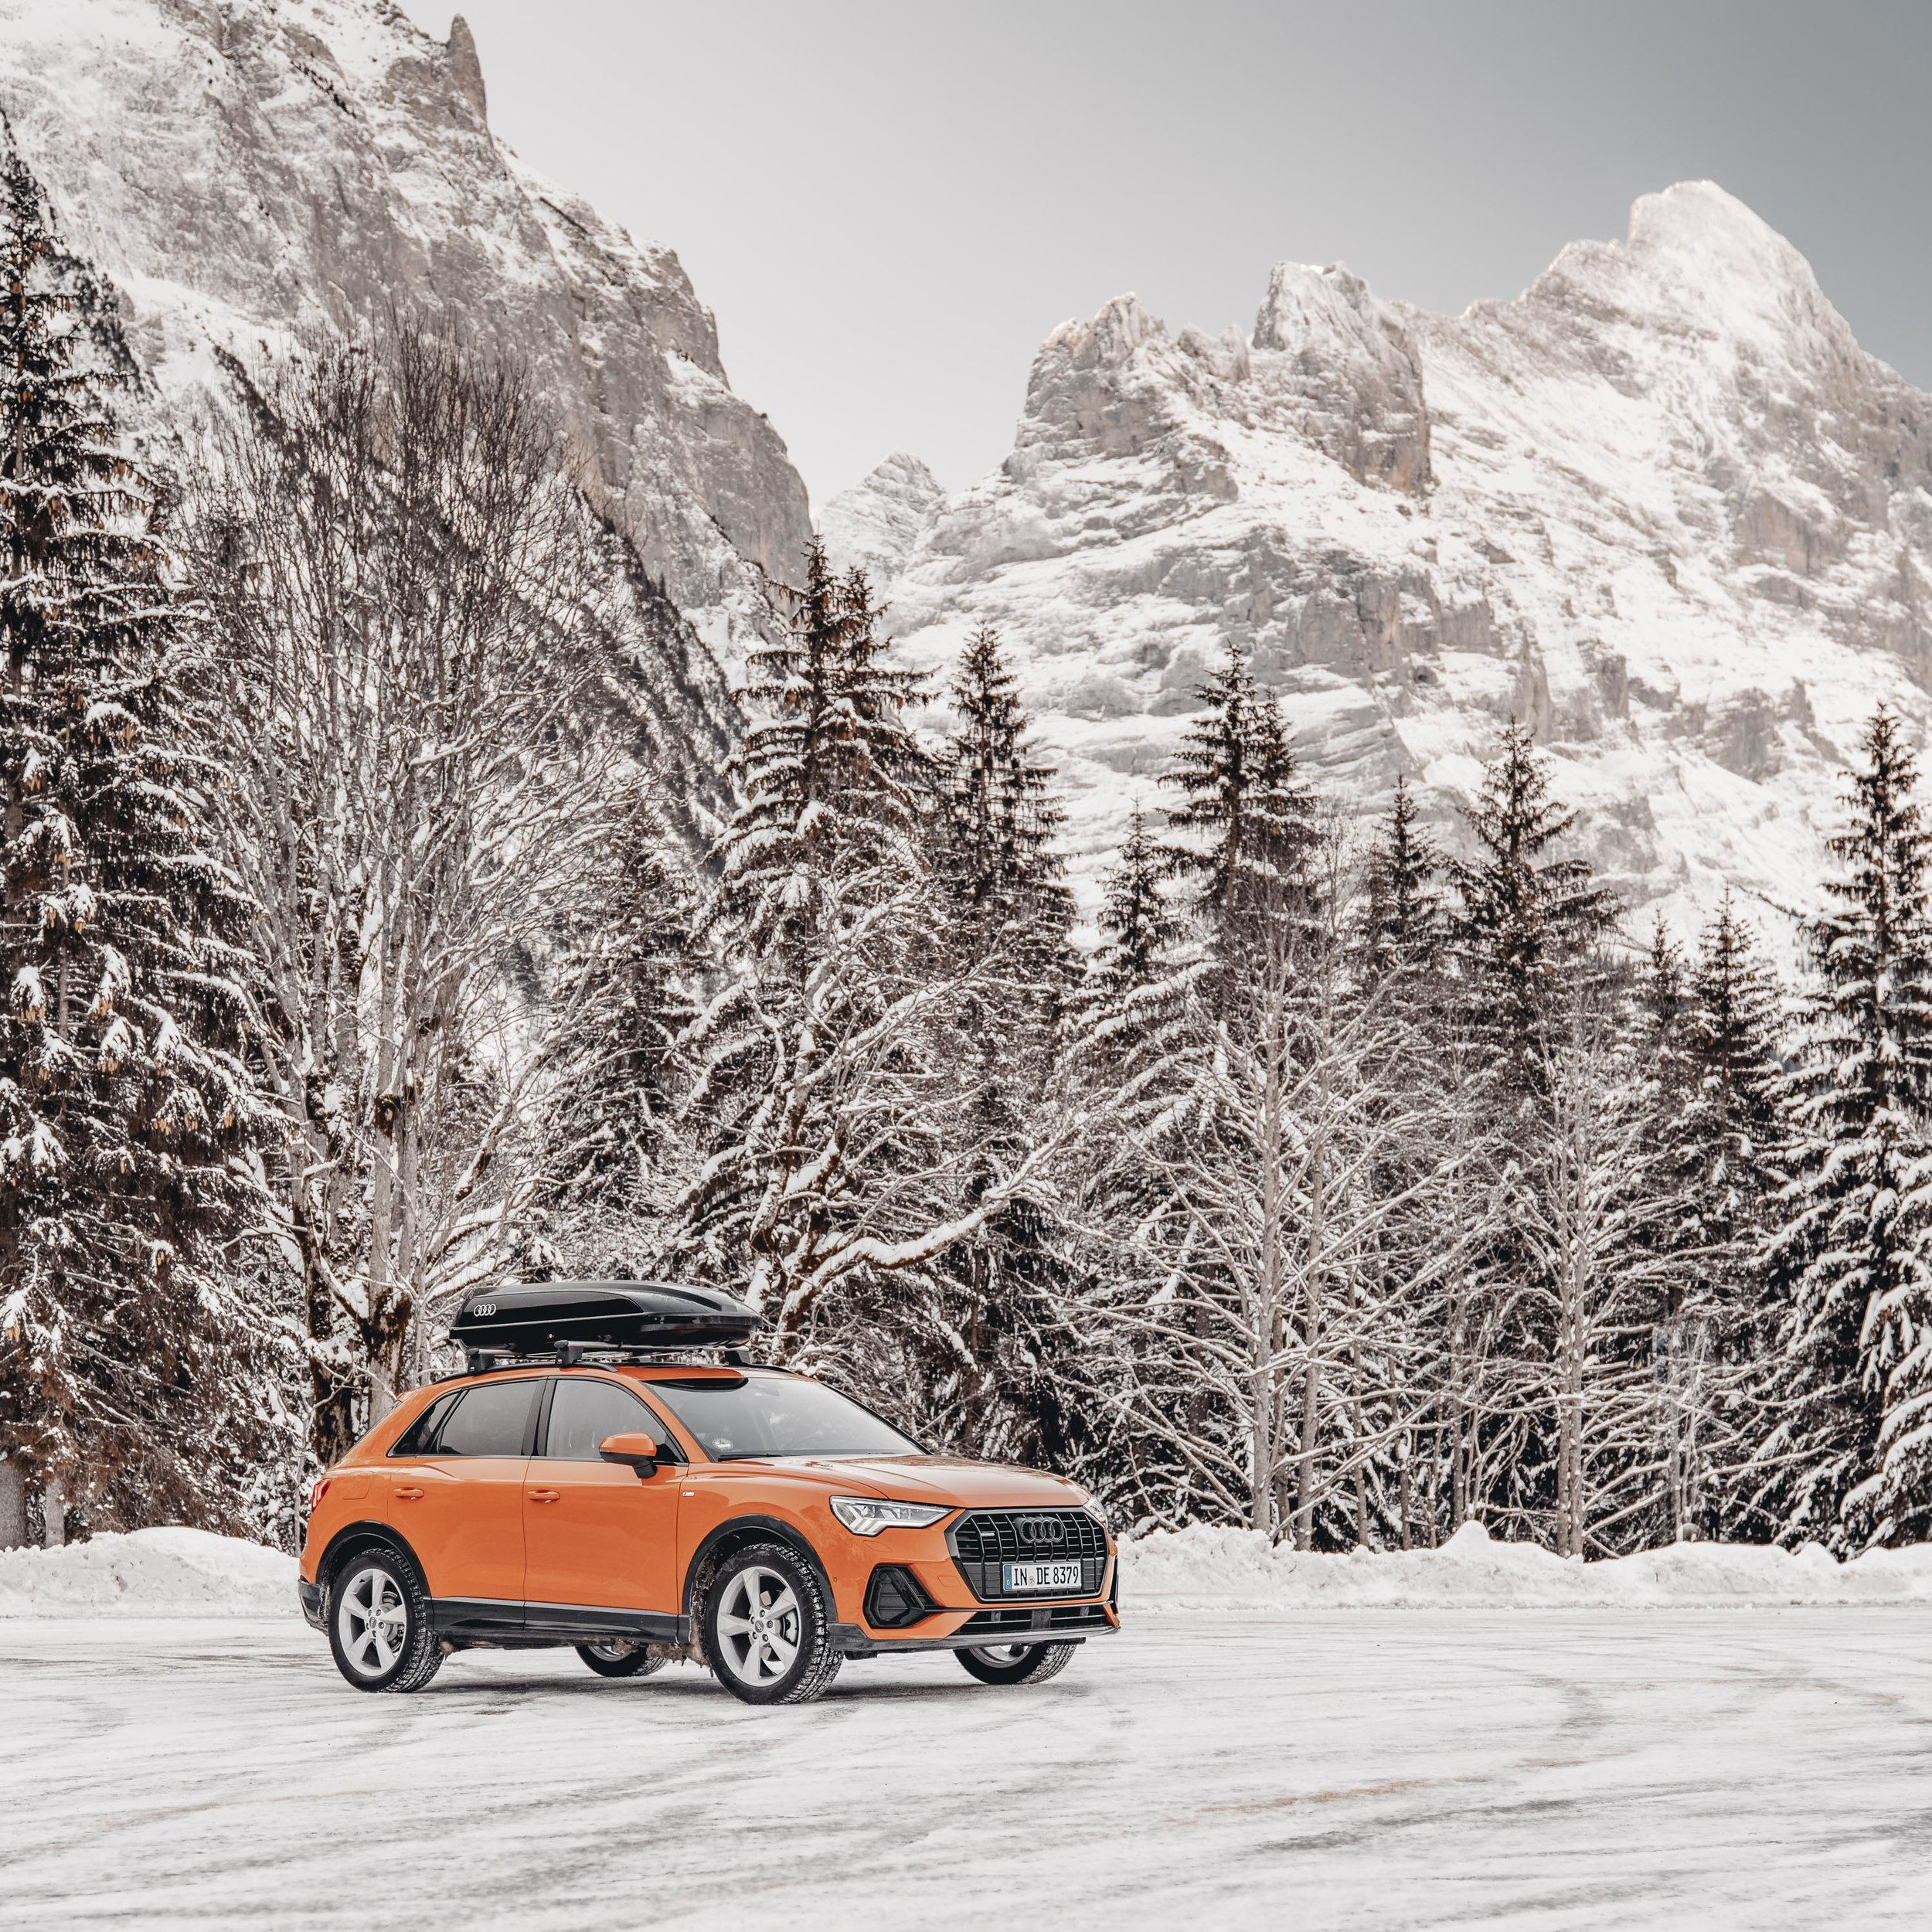 Maximilian-Otto_Best-of-the-Alps_Roadtrip_Winter-2018_51.jpg